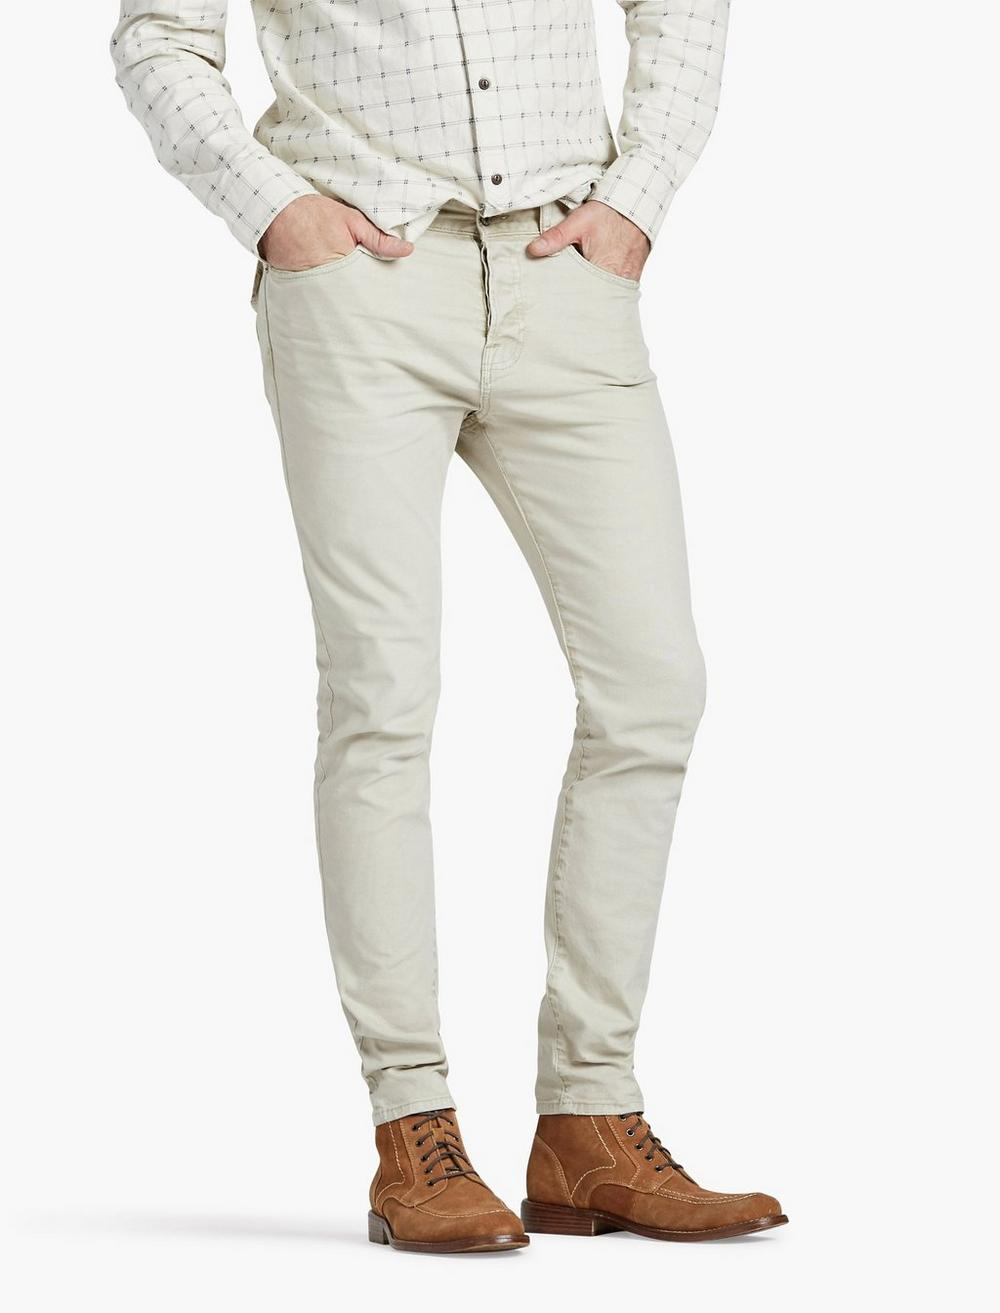 76 SLOUCH SKINNY JEAN, image 1